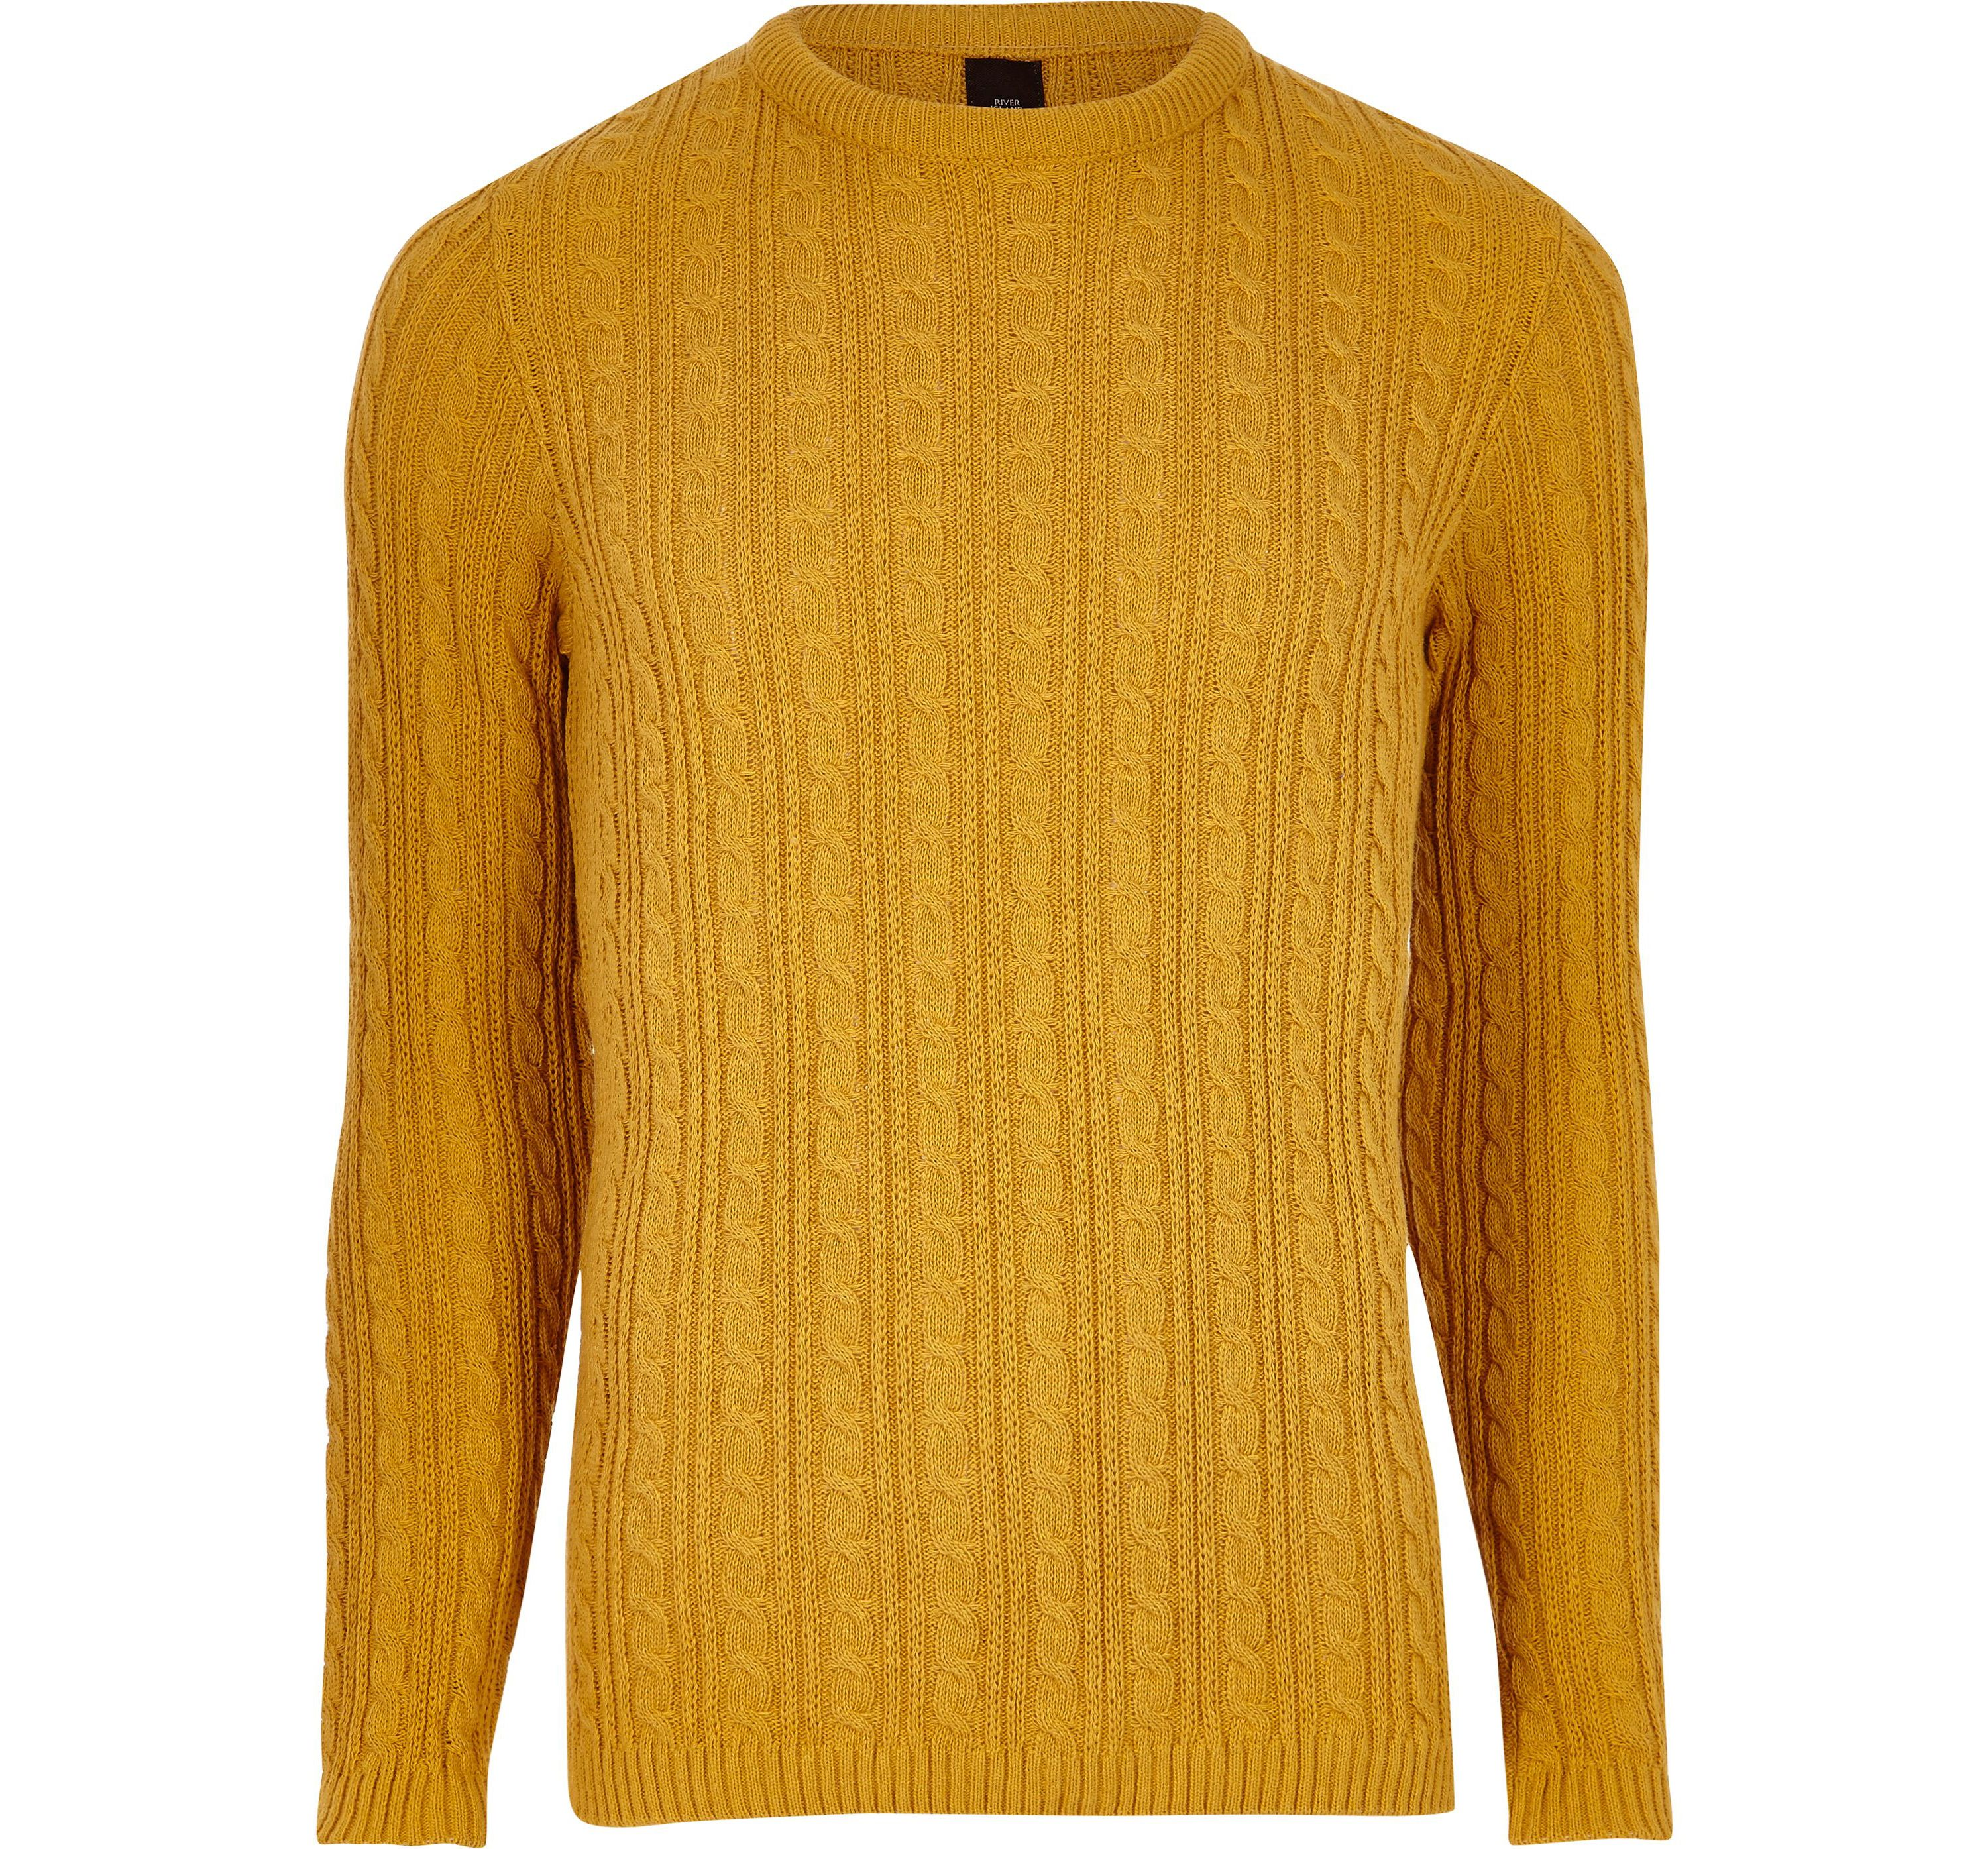 Mens Mustard Yellow Cable Knit Muscle Fit Jumper By River Island Thread